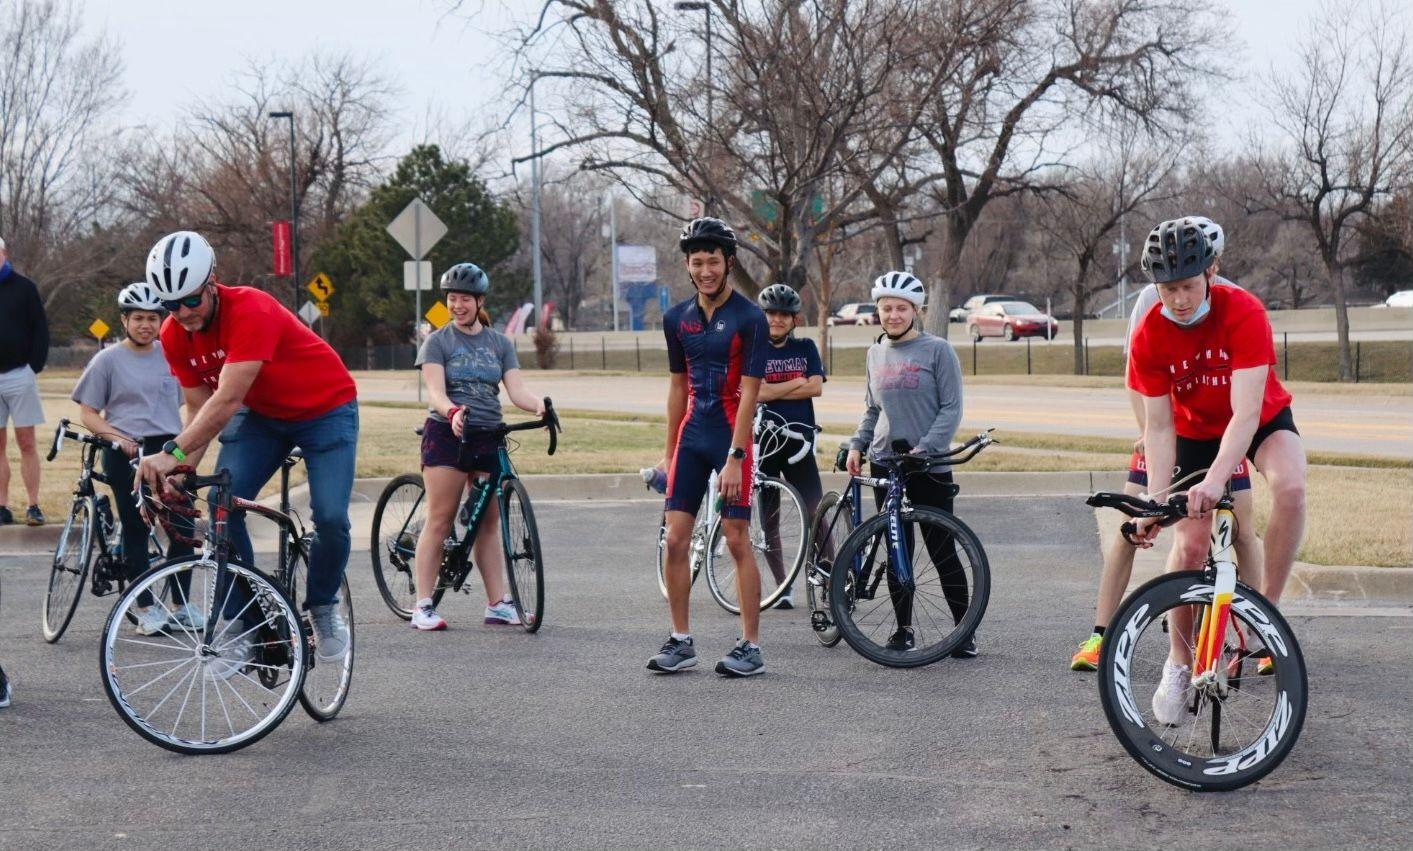 Newman's triathlon team yet to compete since pandemic